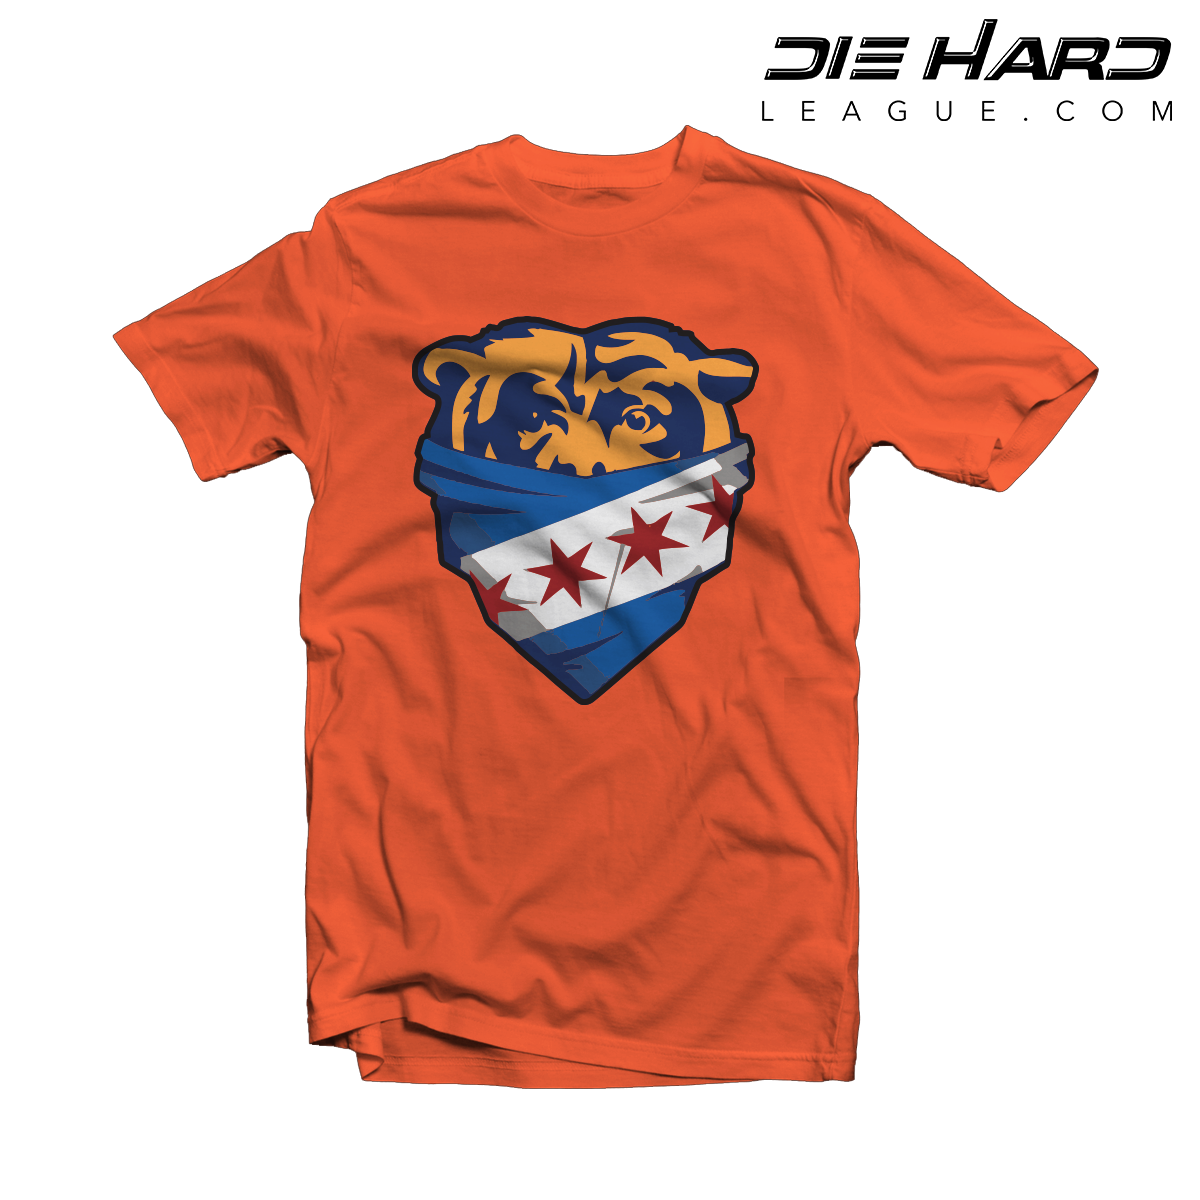 c6f64014485 Shop. Home Chicago Bears Shop Bears T Shirts Chicago Bears Jersey – Bandana  Orange Tee  Best Selling